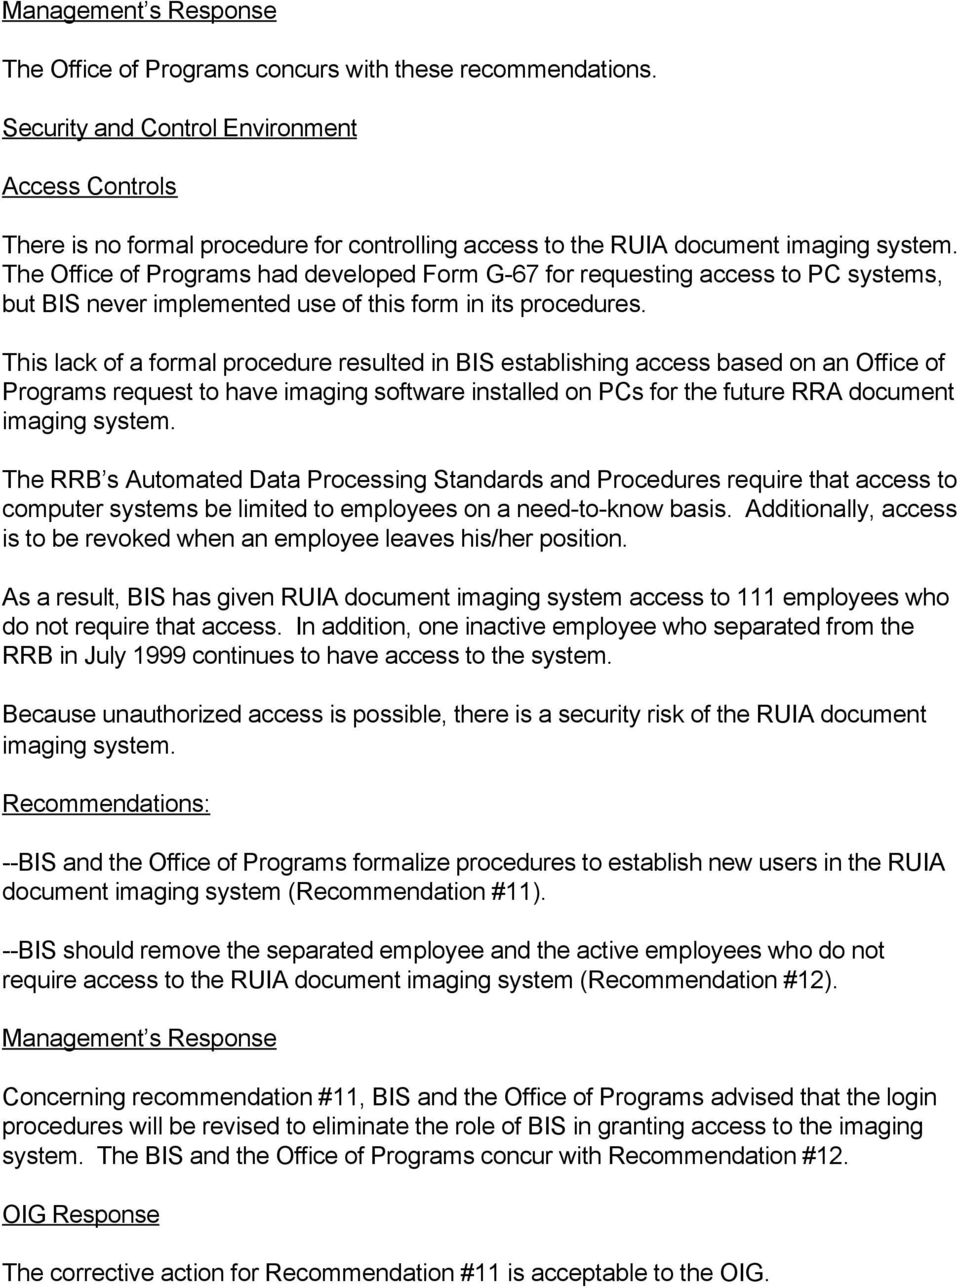 This lack of a formal procedure resulted in BIS establishing access based on an Office of Programs request to have imaging software installed on PCs for the future RRA document imaging system.